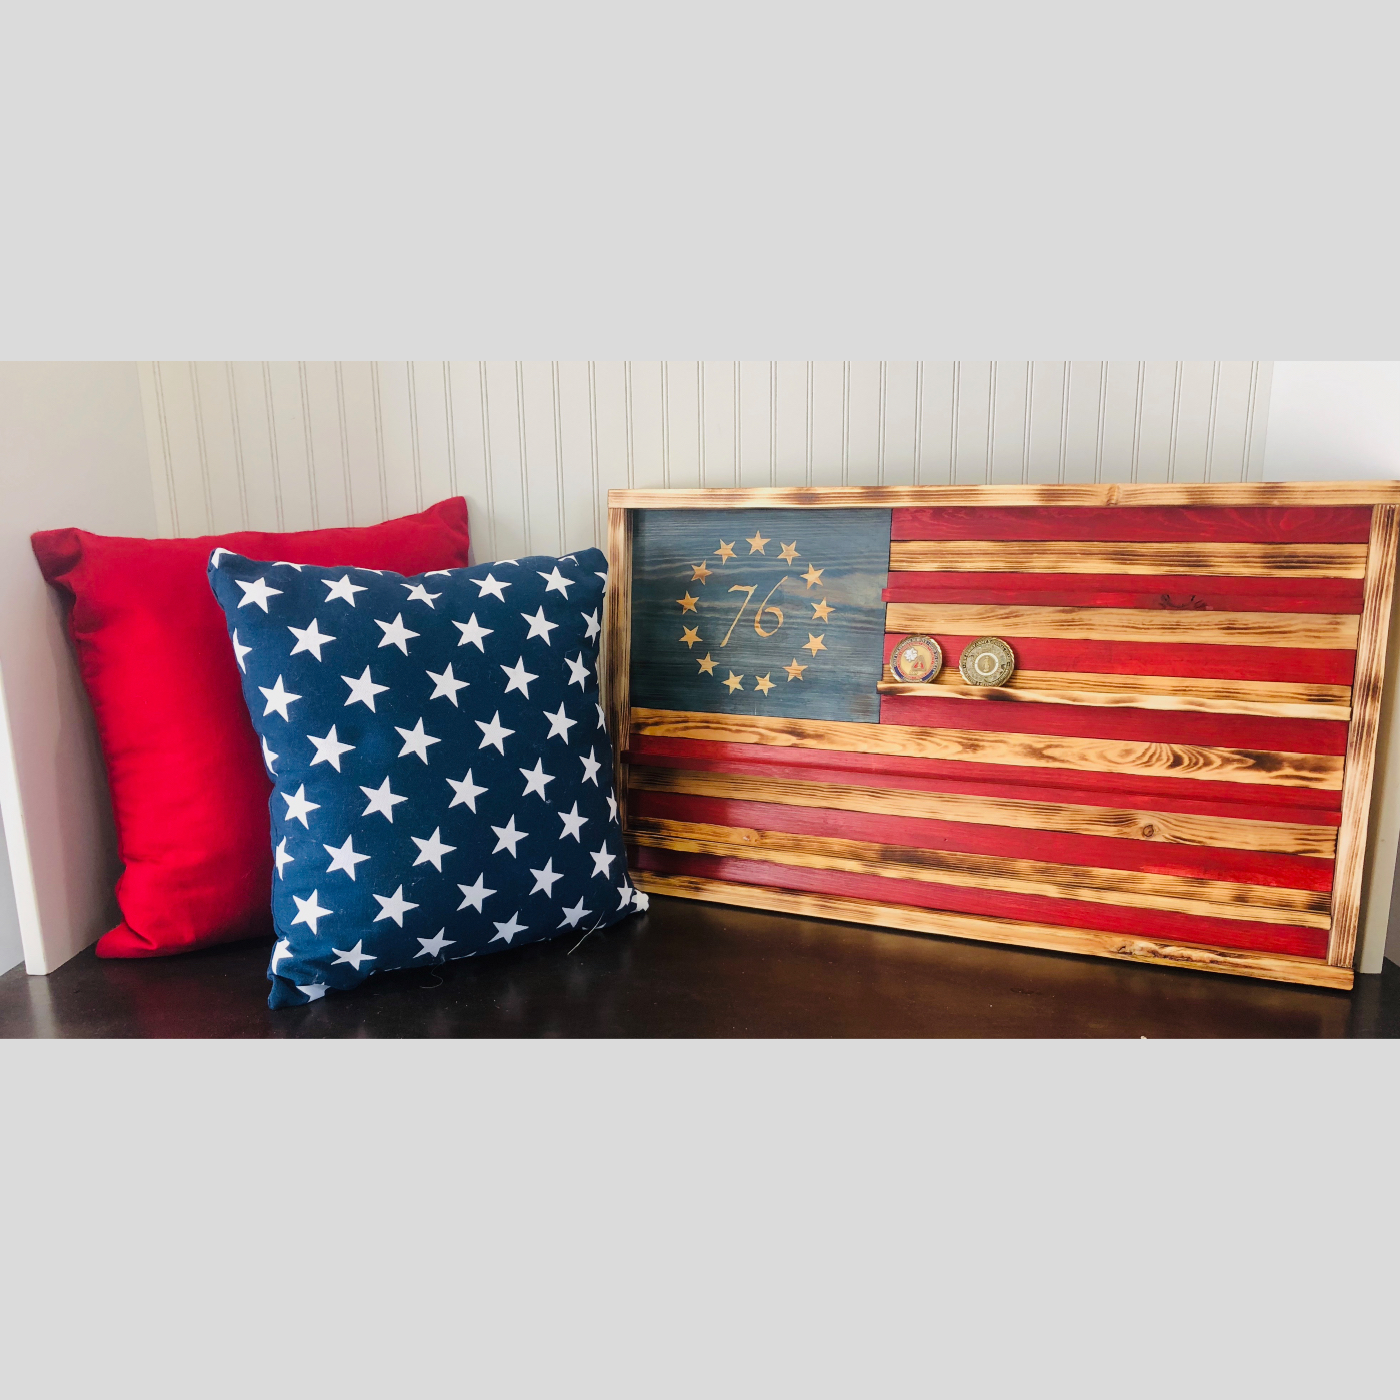 Flag Coin Holder DIY Rustic Wood Project Bethlehem PA